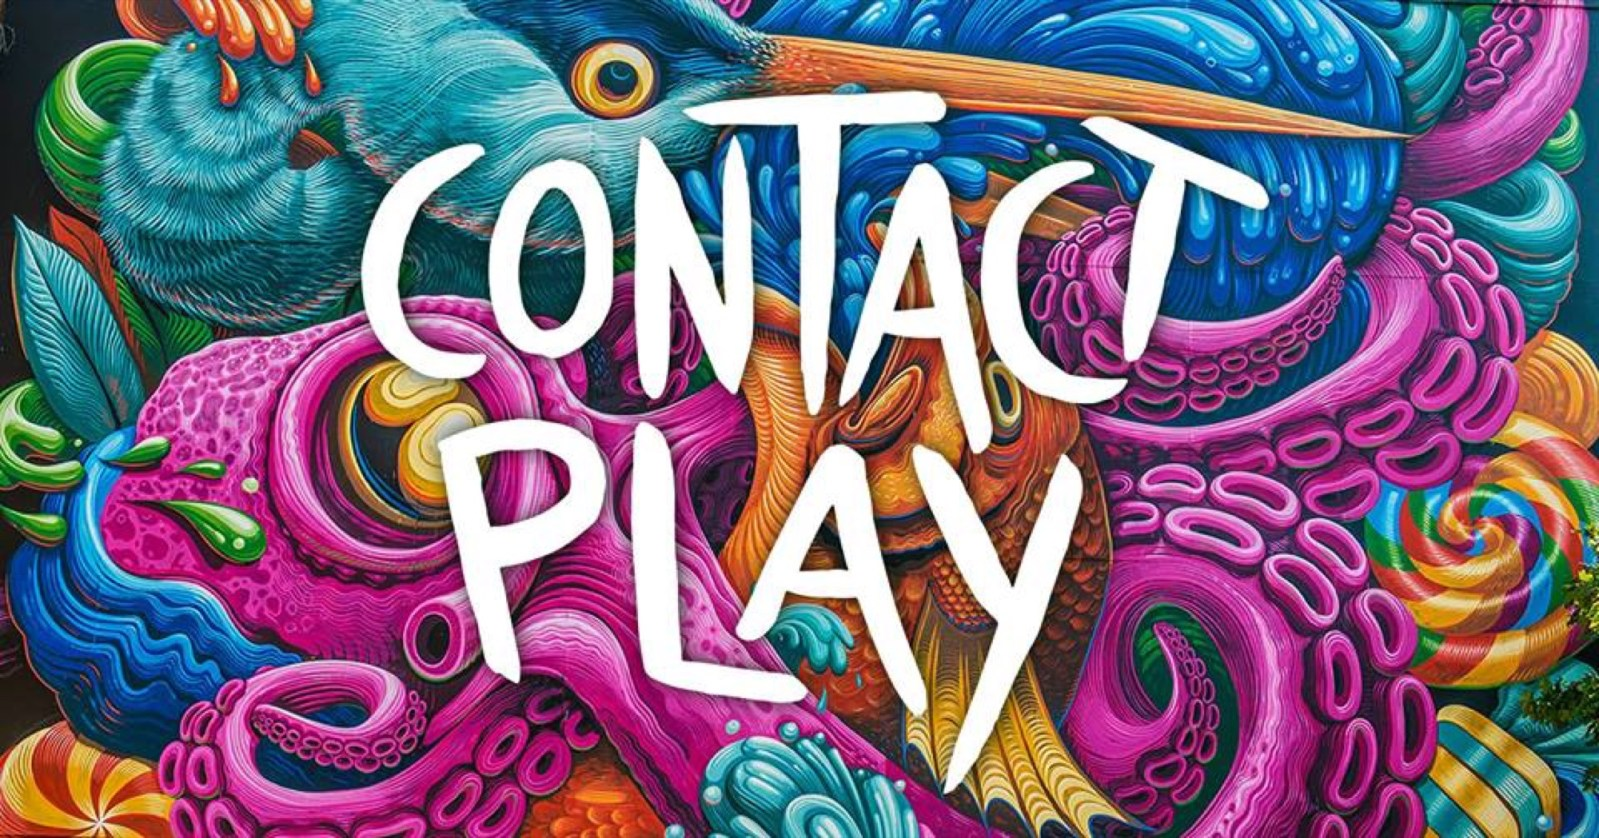 contact play